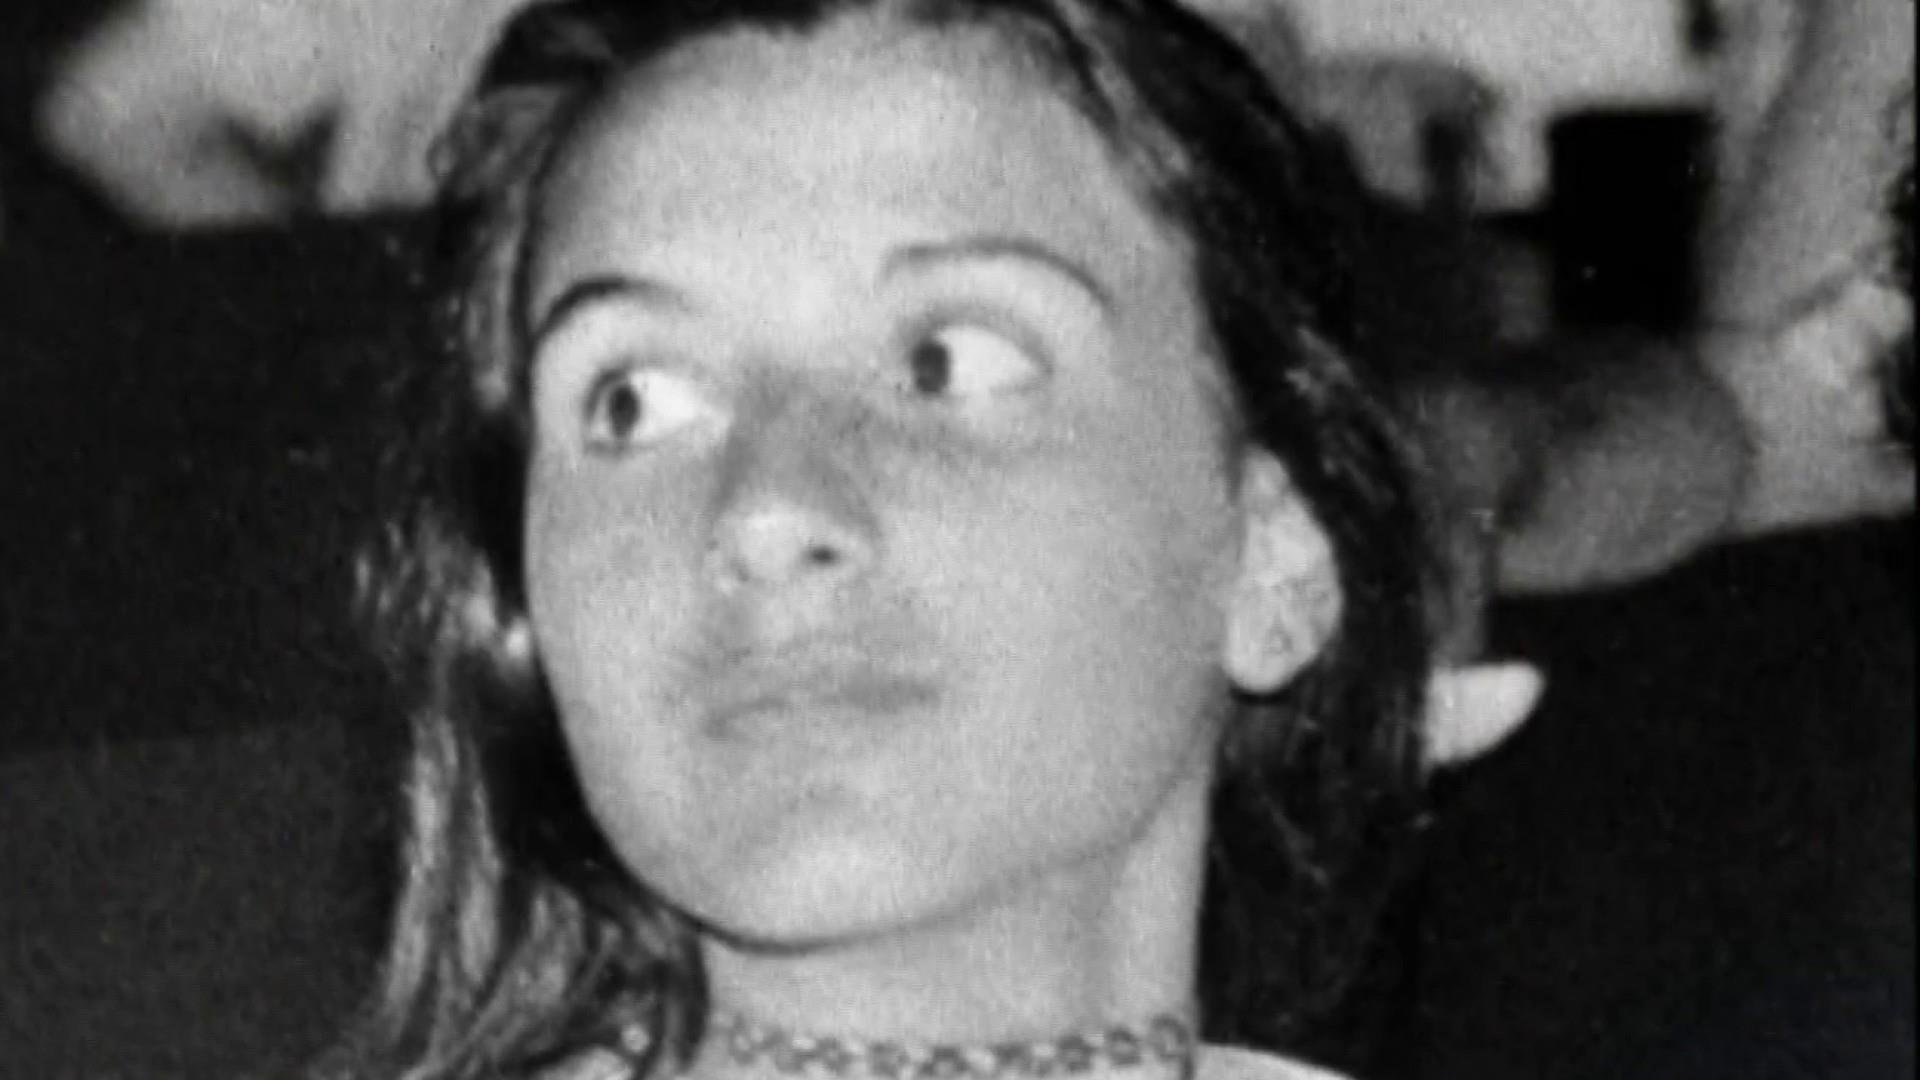 Vatican recovers bones in bid to solve mystery of teen girl missing since 1983